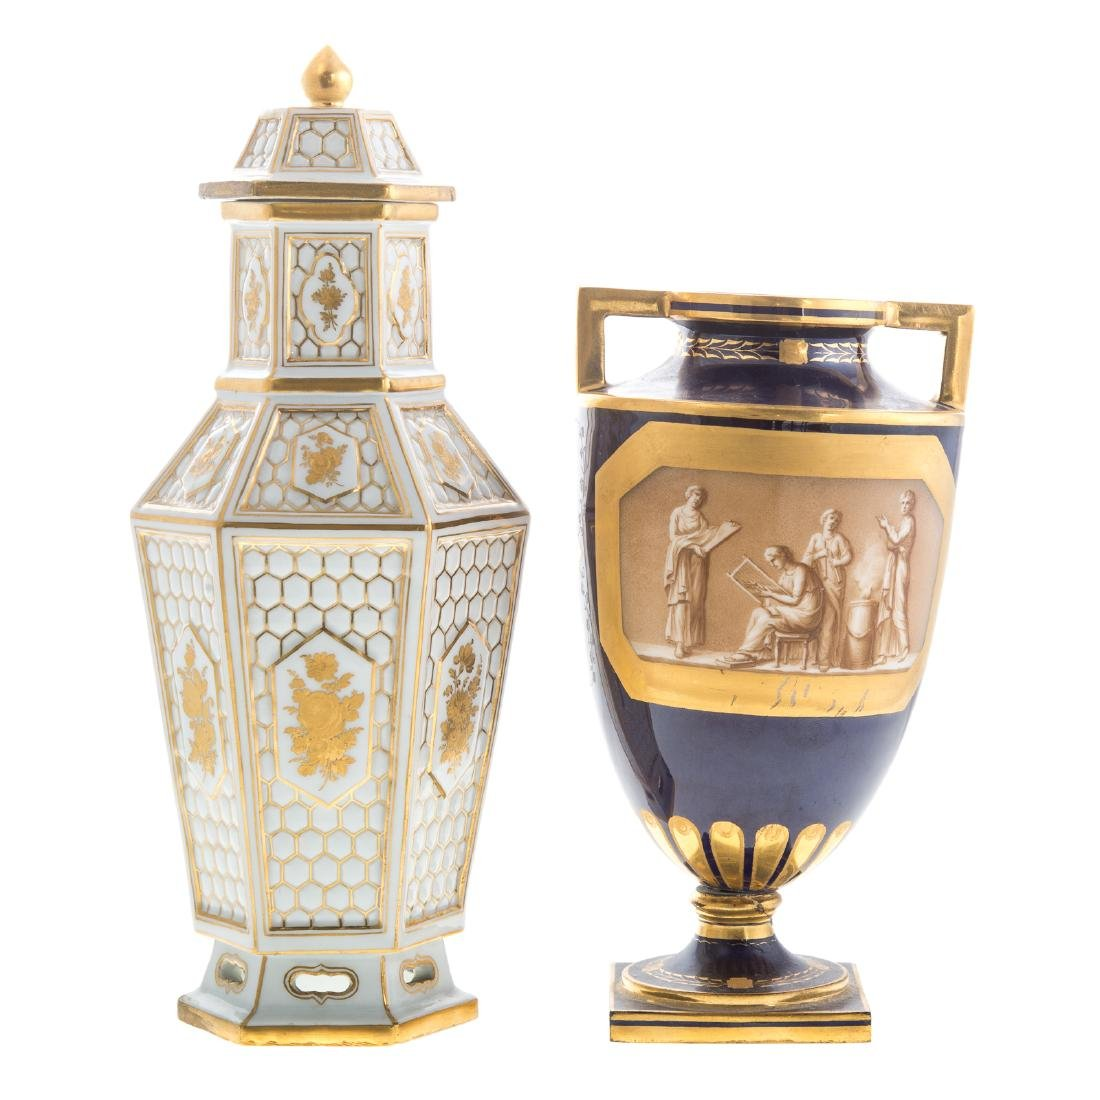 Meissen porcelain jar and Vienna urn